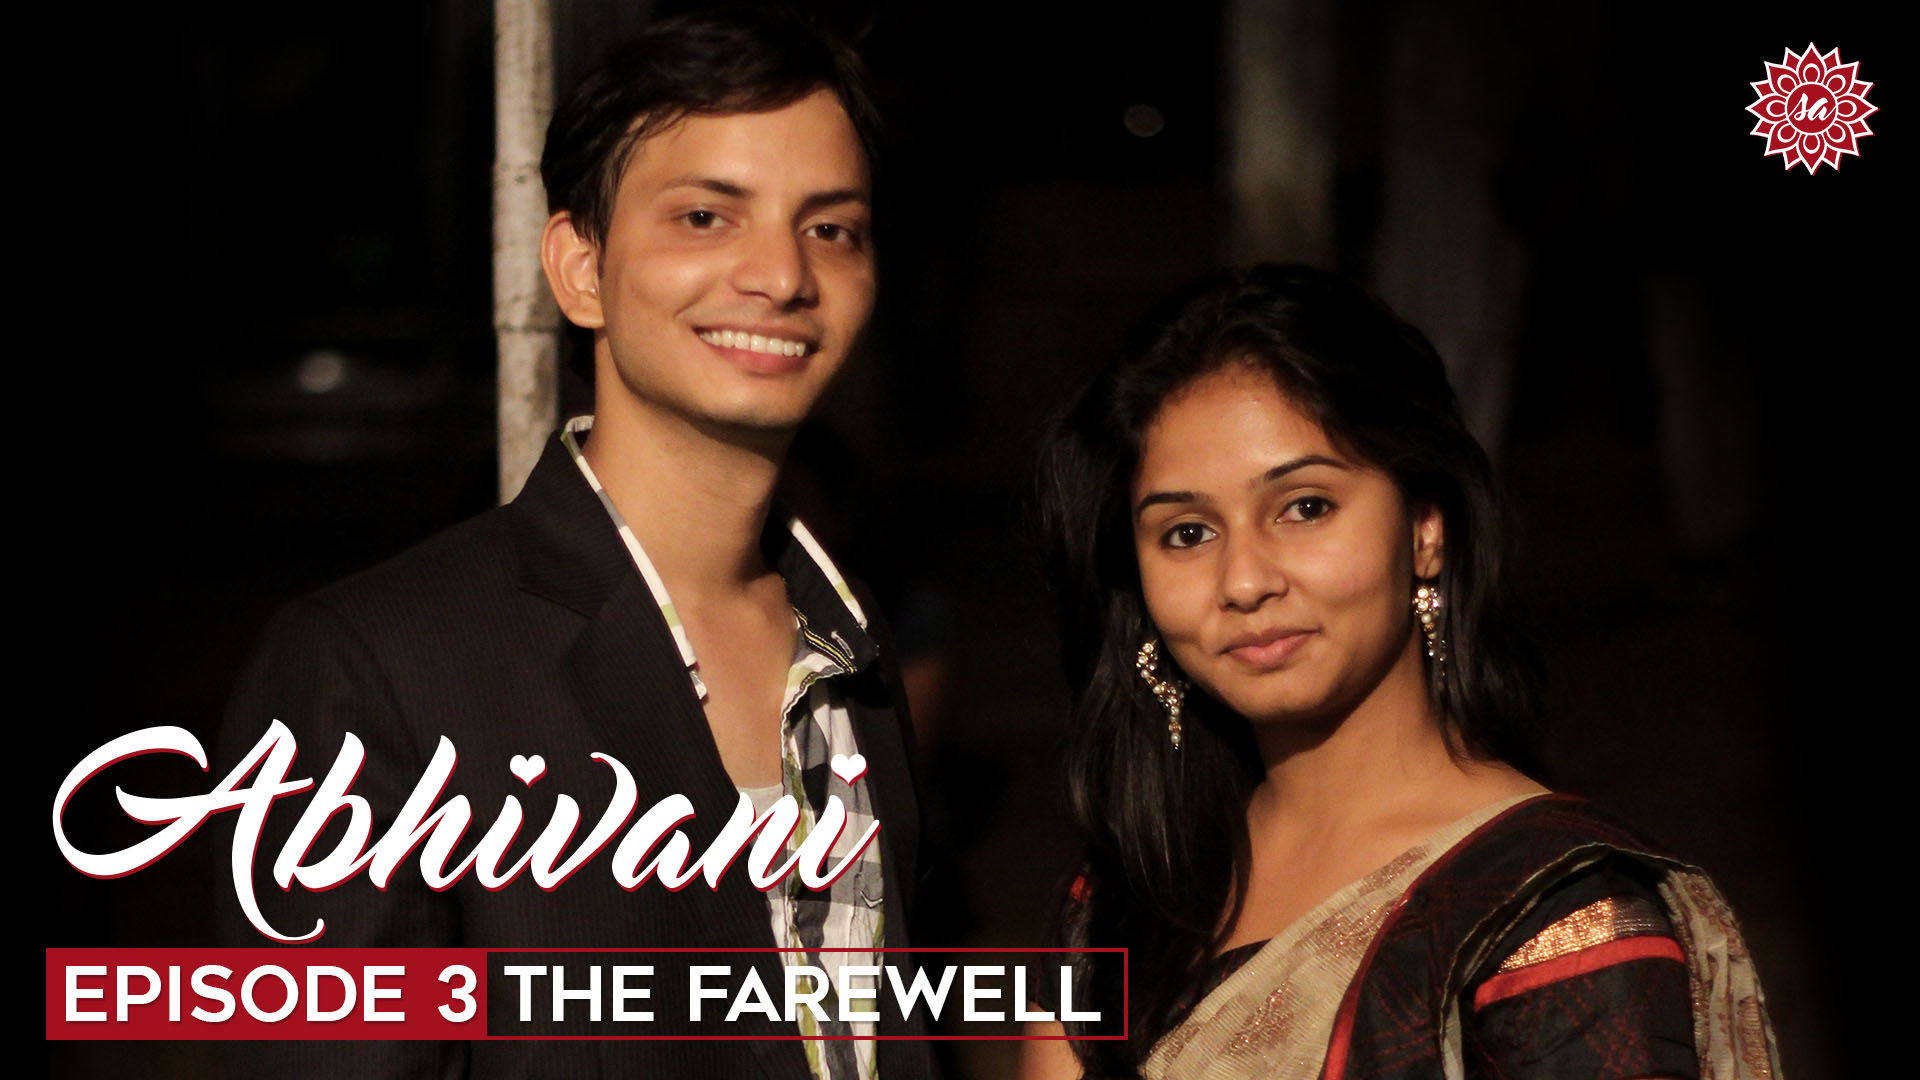 OUR3_The Farewell copy s